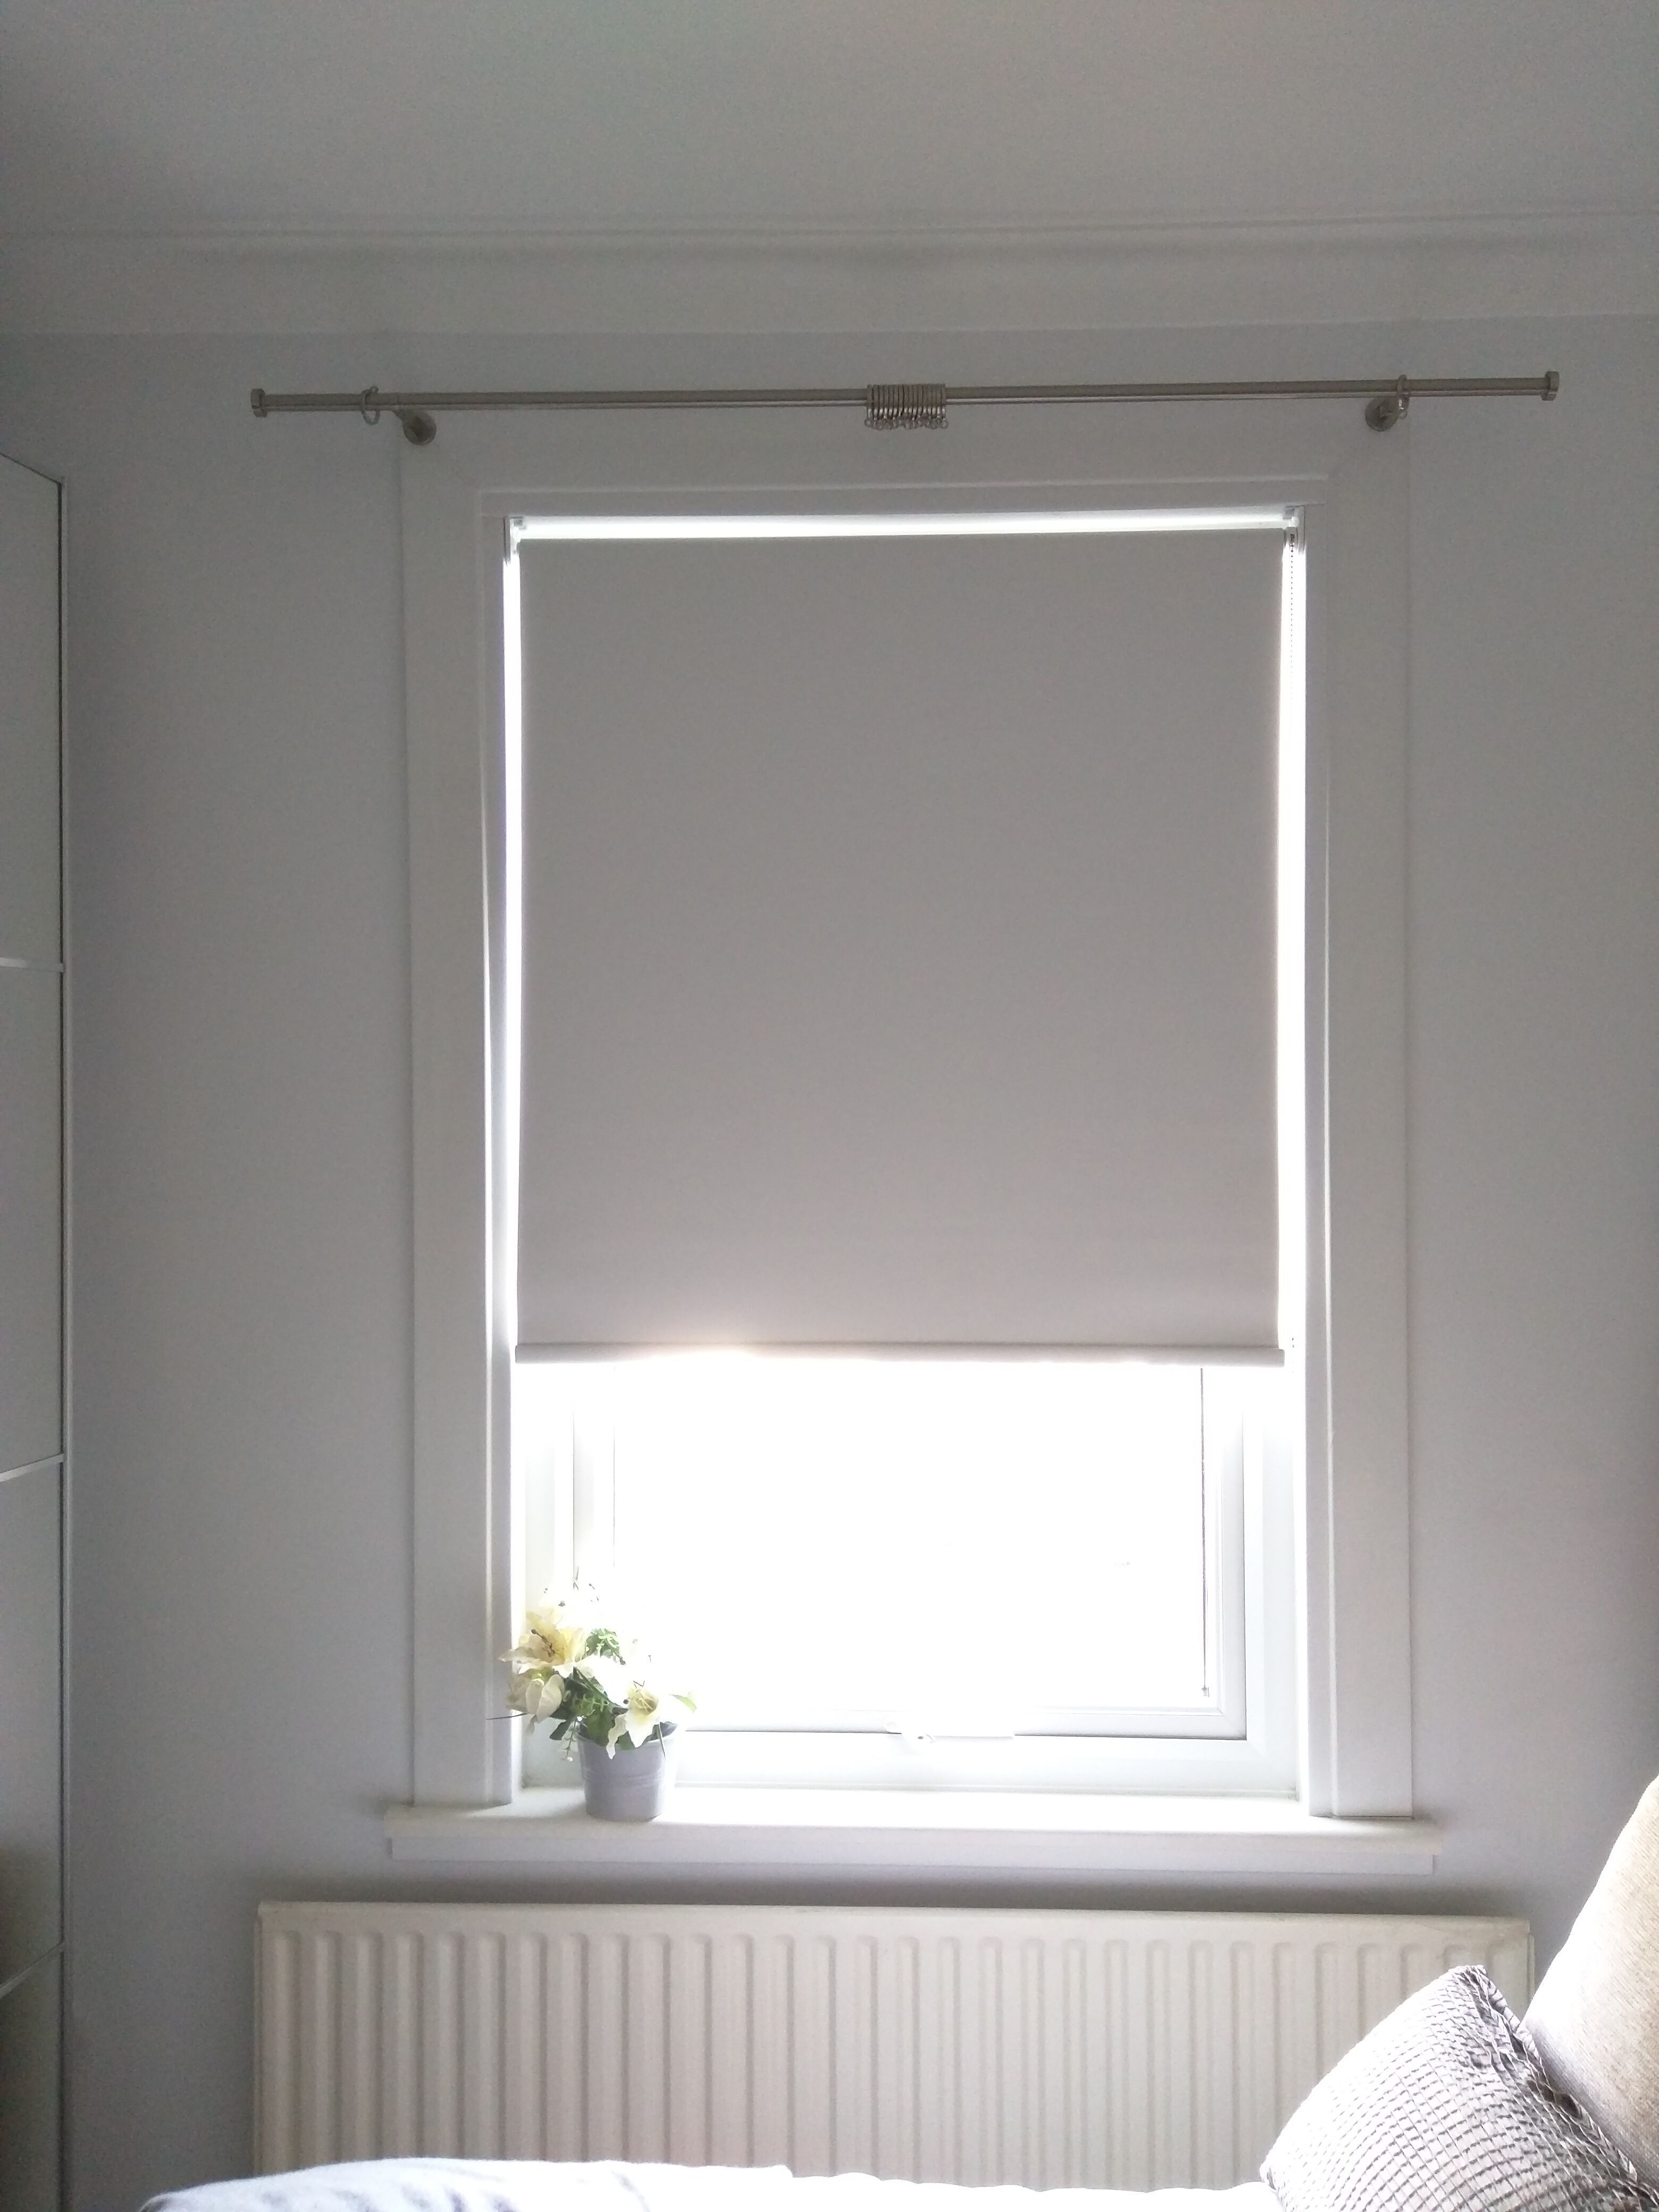 Blackout Roller Blind In Polar White Fitted To Bedroom Window In Fulham Modern Blinds Bedroom Blinds Blacko Bedroom Blinds Modern Blinds Blackout Blinds